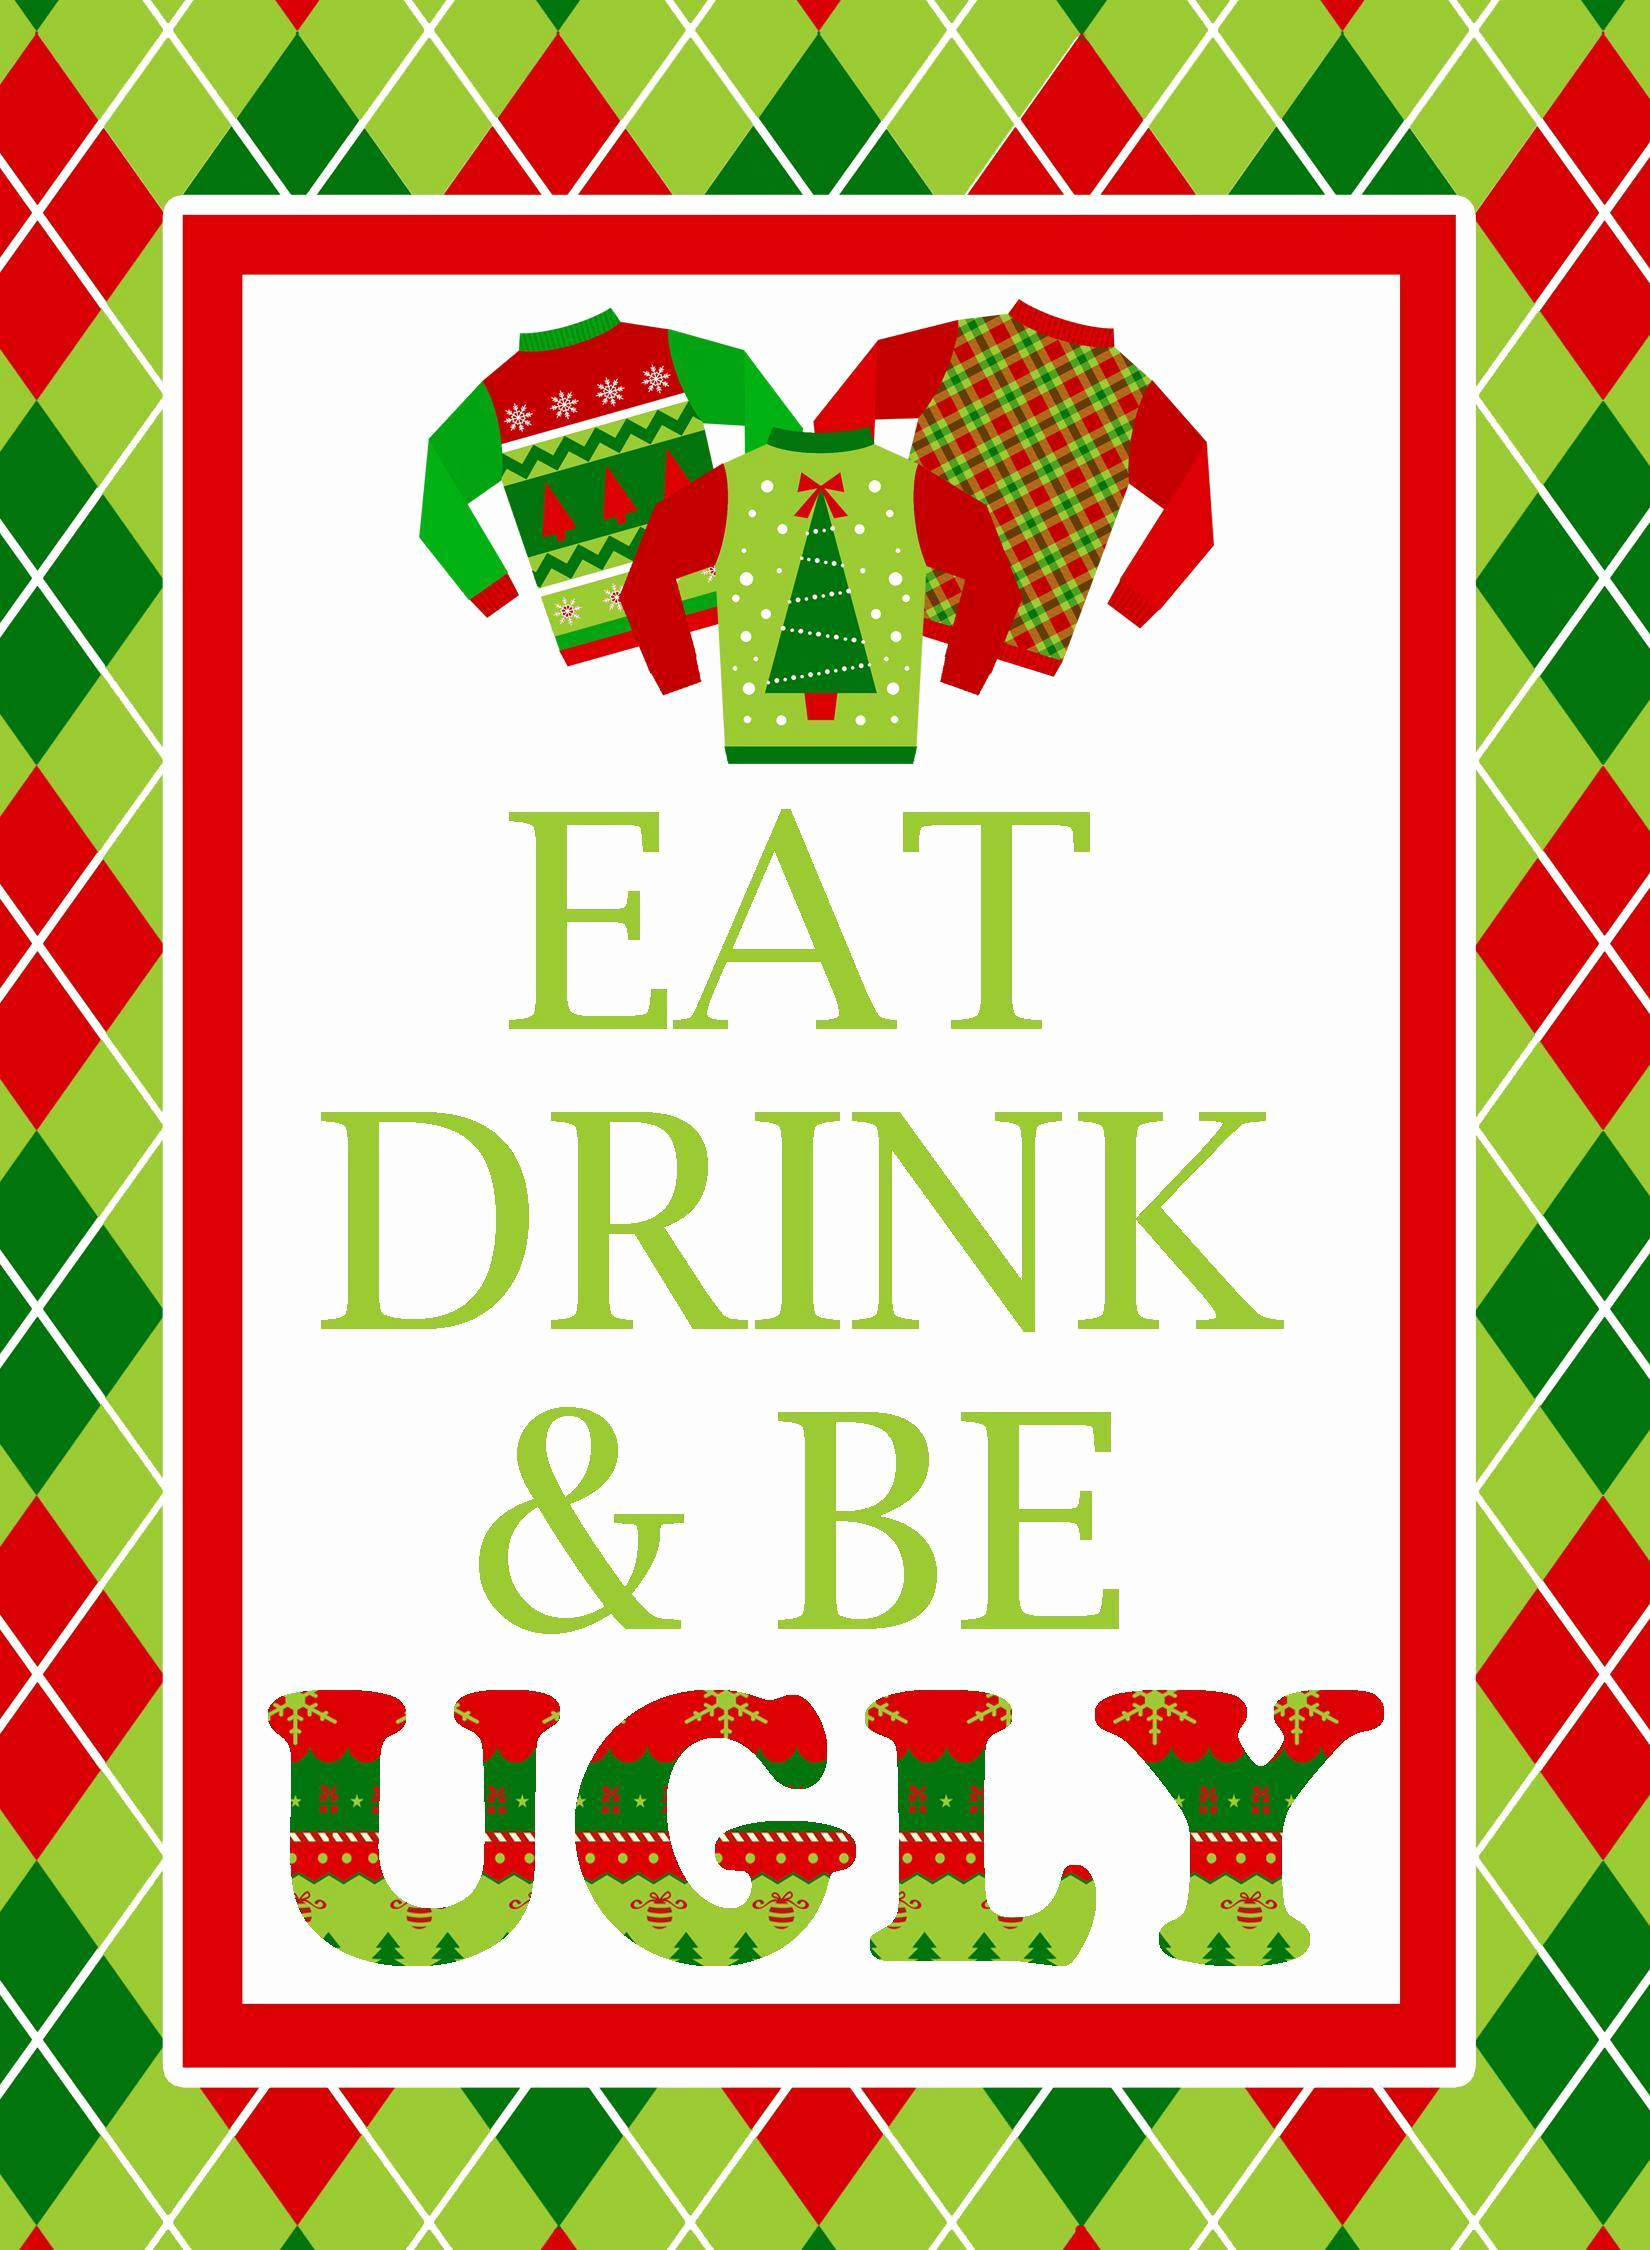 Ugly Sweater Party Invitation Templates Lovely Ugly Sweater Invitation Template Free Ugly Sweater Party